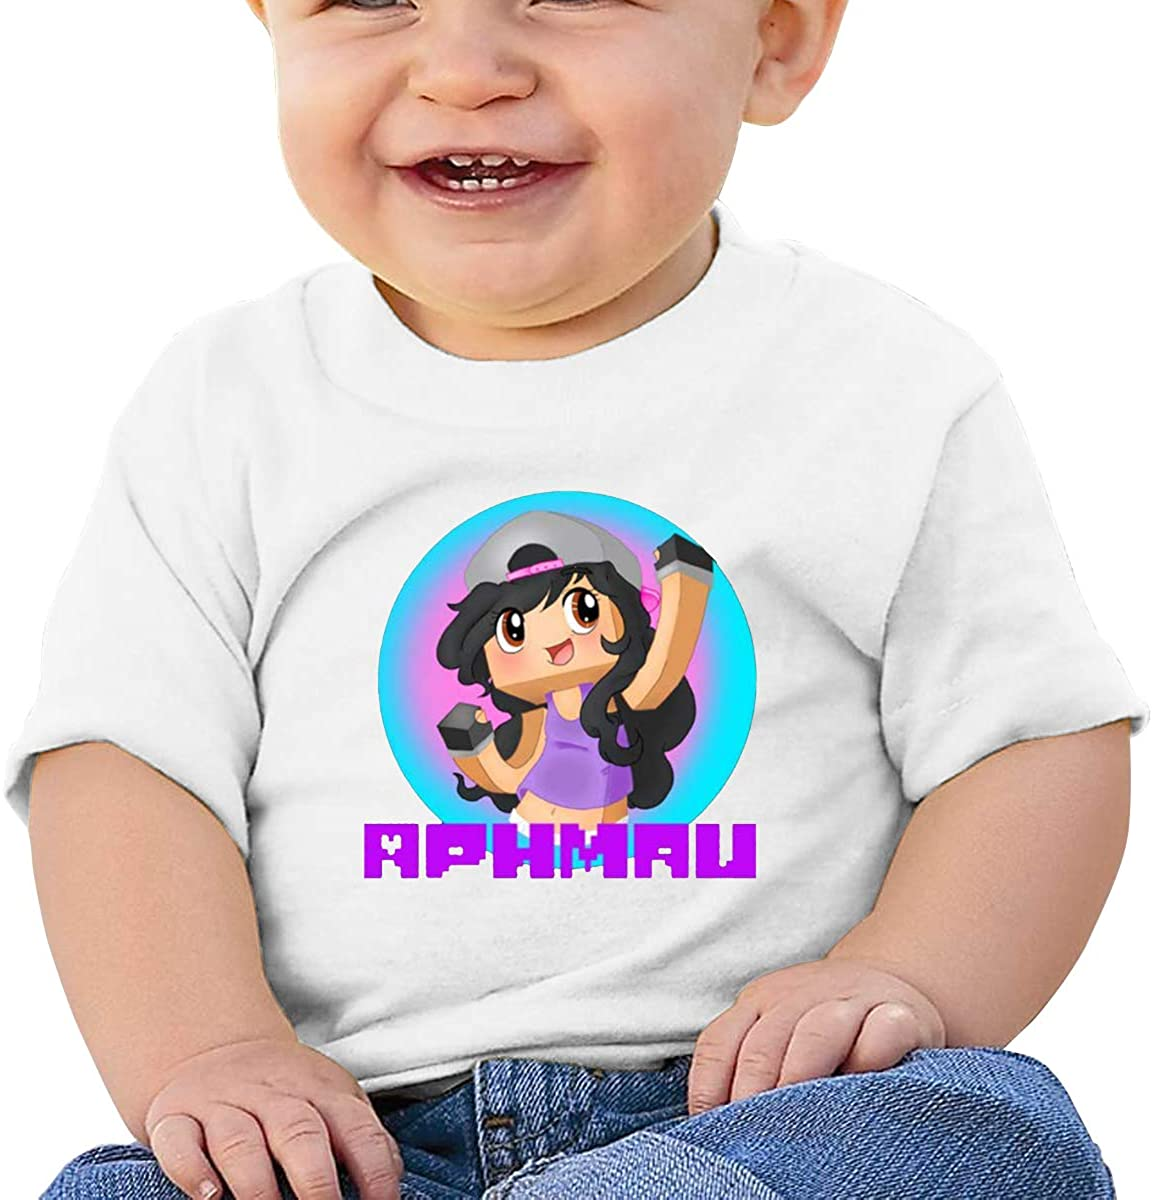 6-24 Months Boy and Girl Baby Short Sleeve T-Shirt Aphmau Logo Elegant and Simple Design White